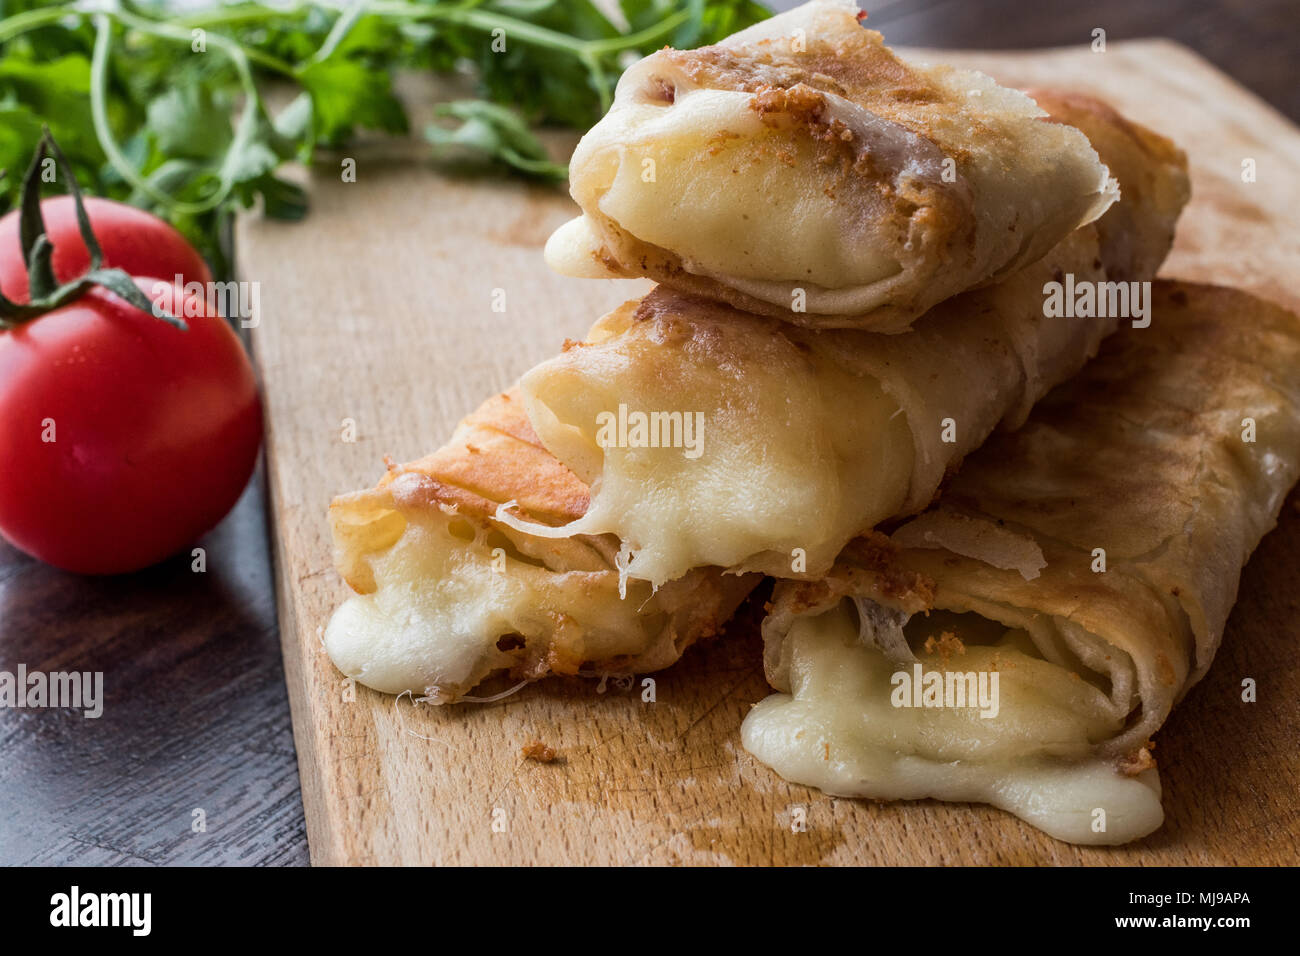 Fried Melted Feta Cheese On High Resolution Stock Photography And Images Alamy